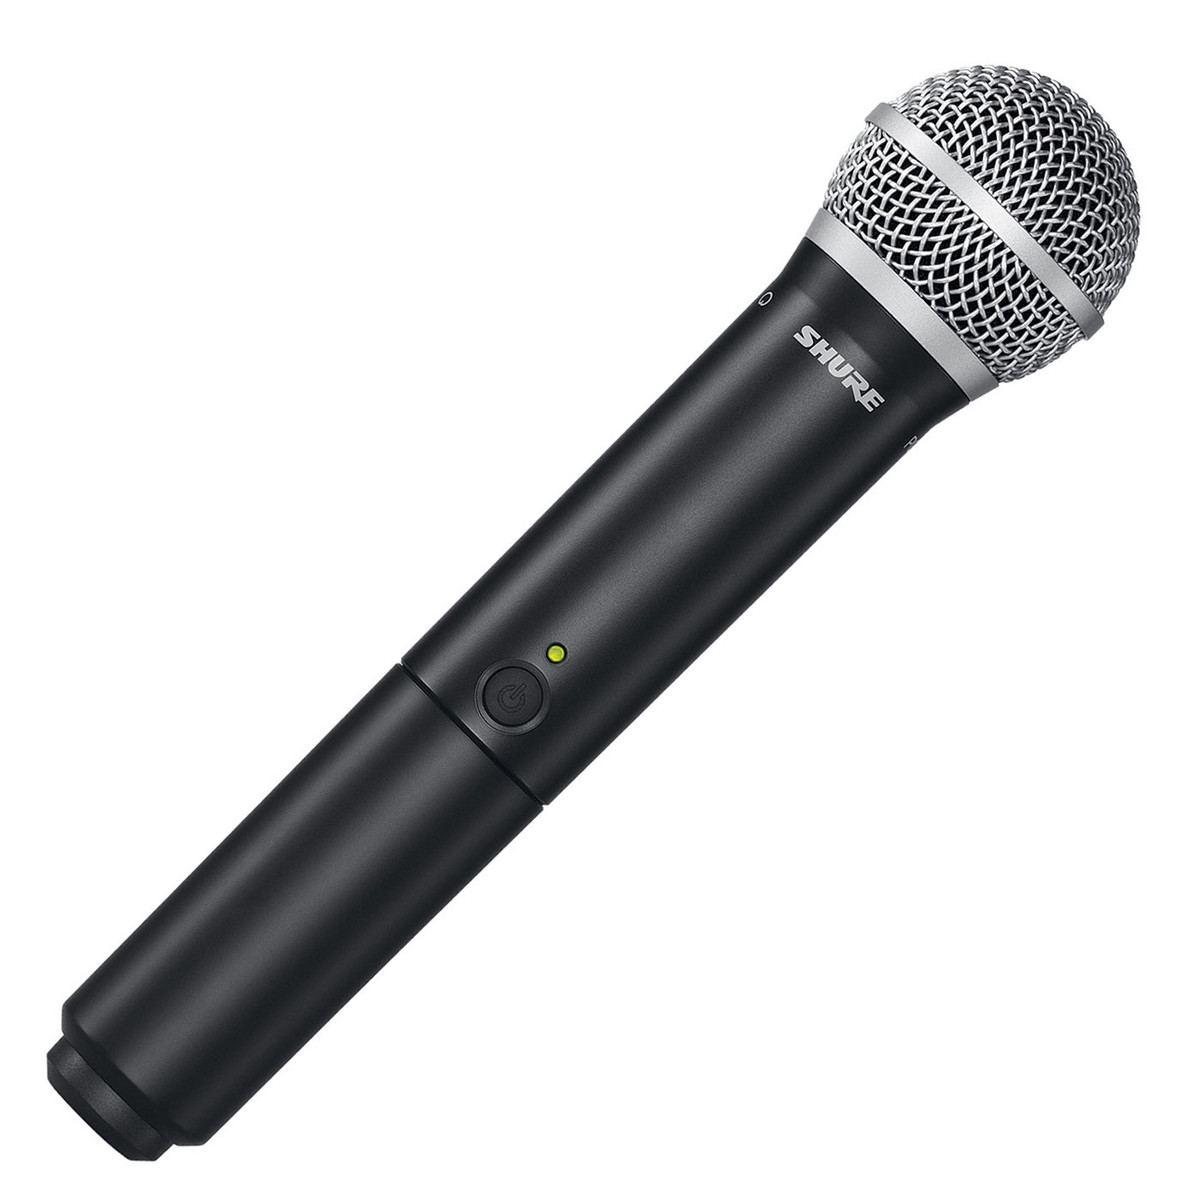 shure blx2 pg58 k3e wireless handheld microphone transmitter at gear4music. Black Bedroom Furniture Sets. Home Design Ideas